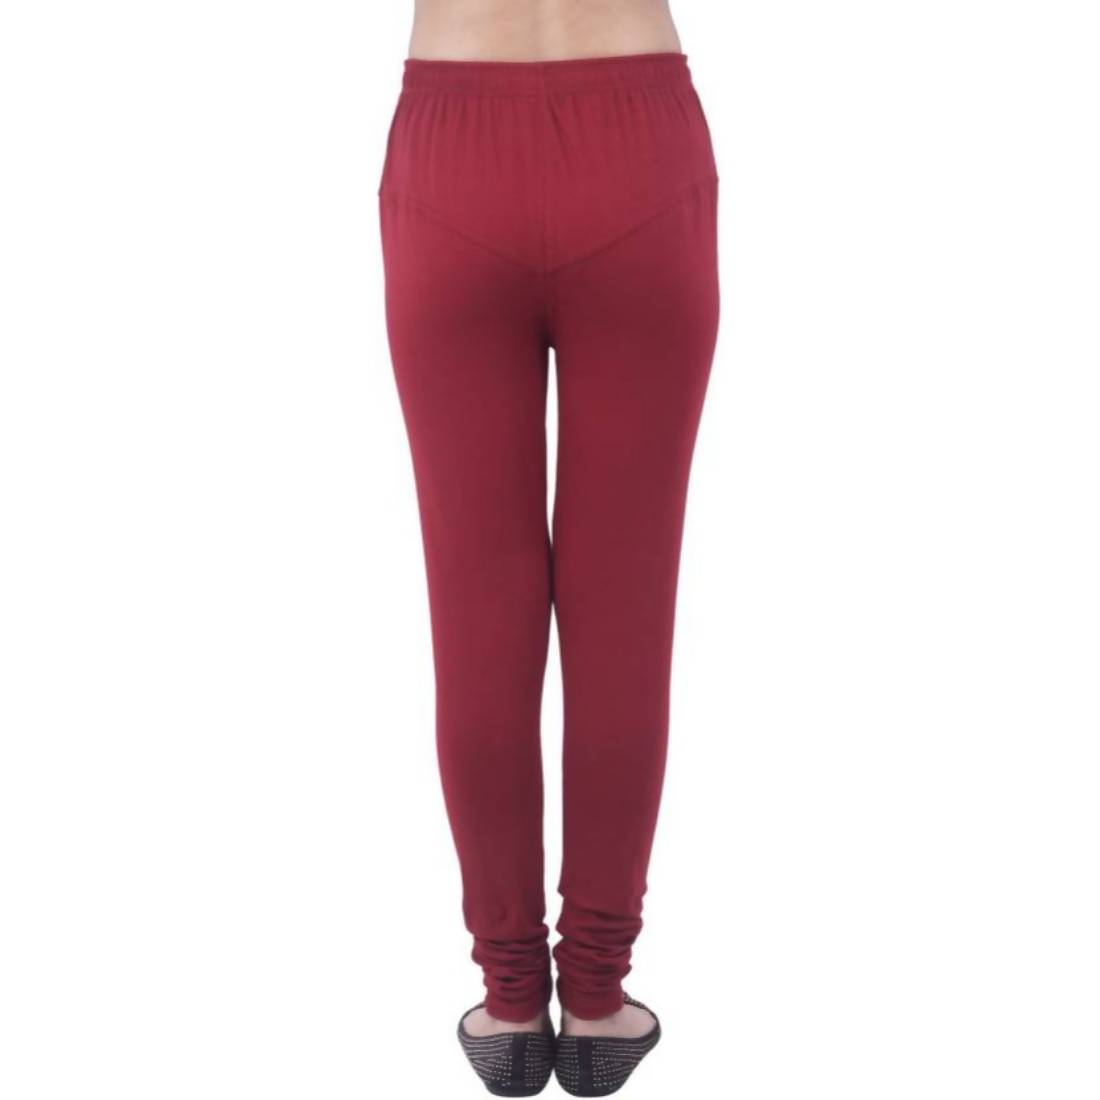 8367affd81 ... Amihgo Women's Maroon Churidar Cotton Legging-Free Size $ MAH40006 ...